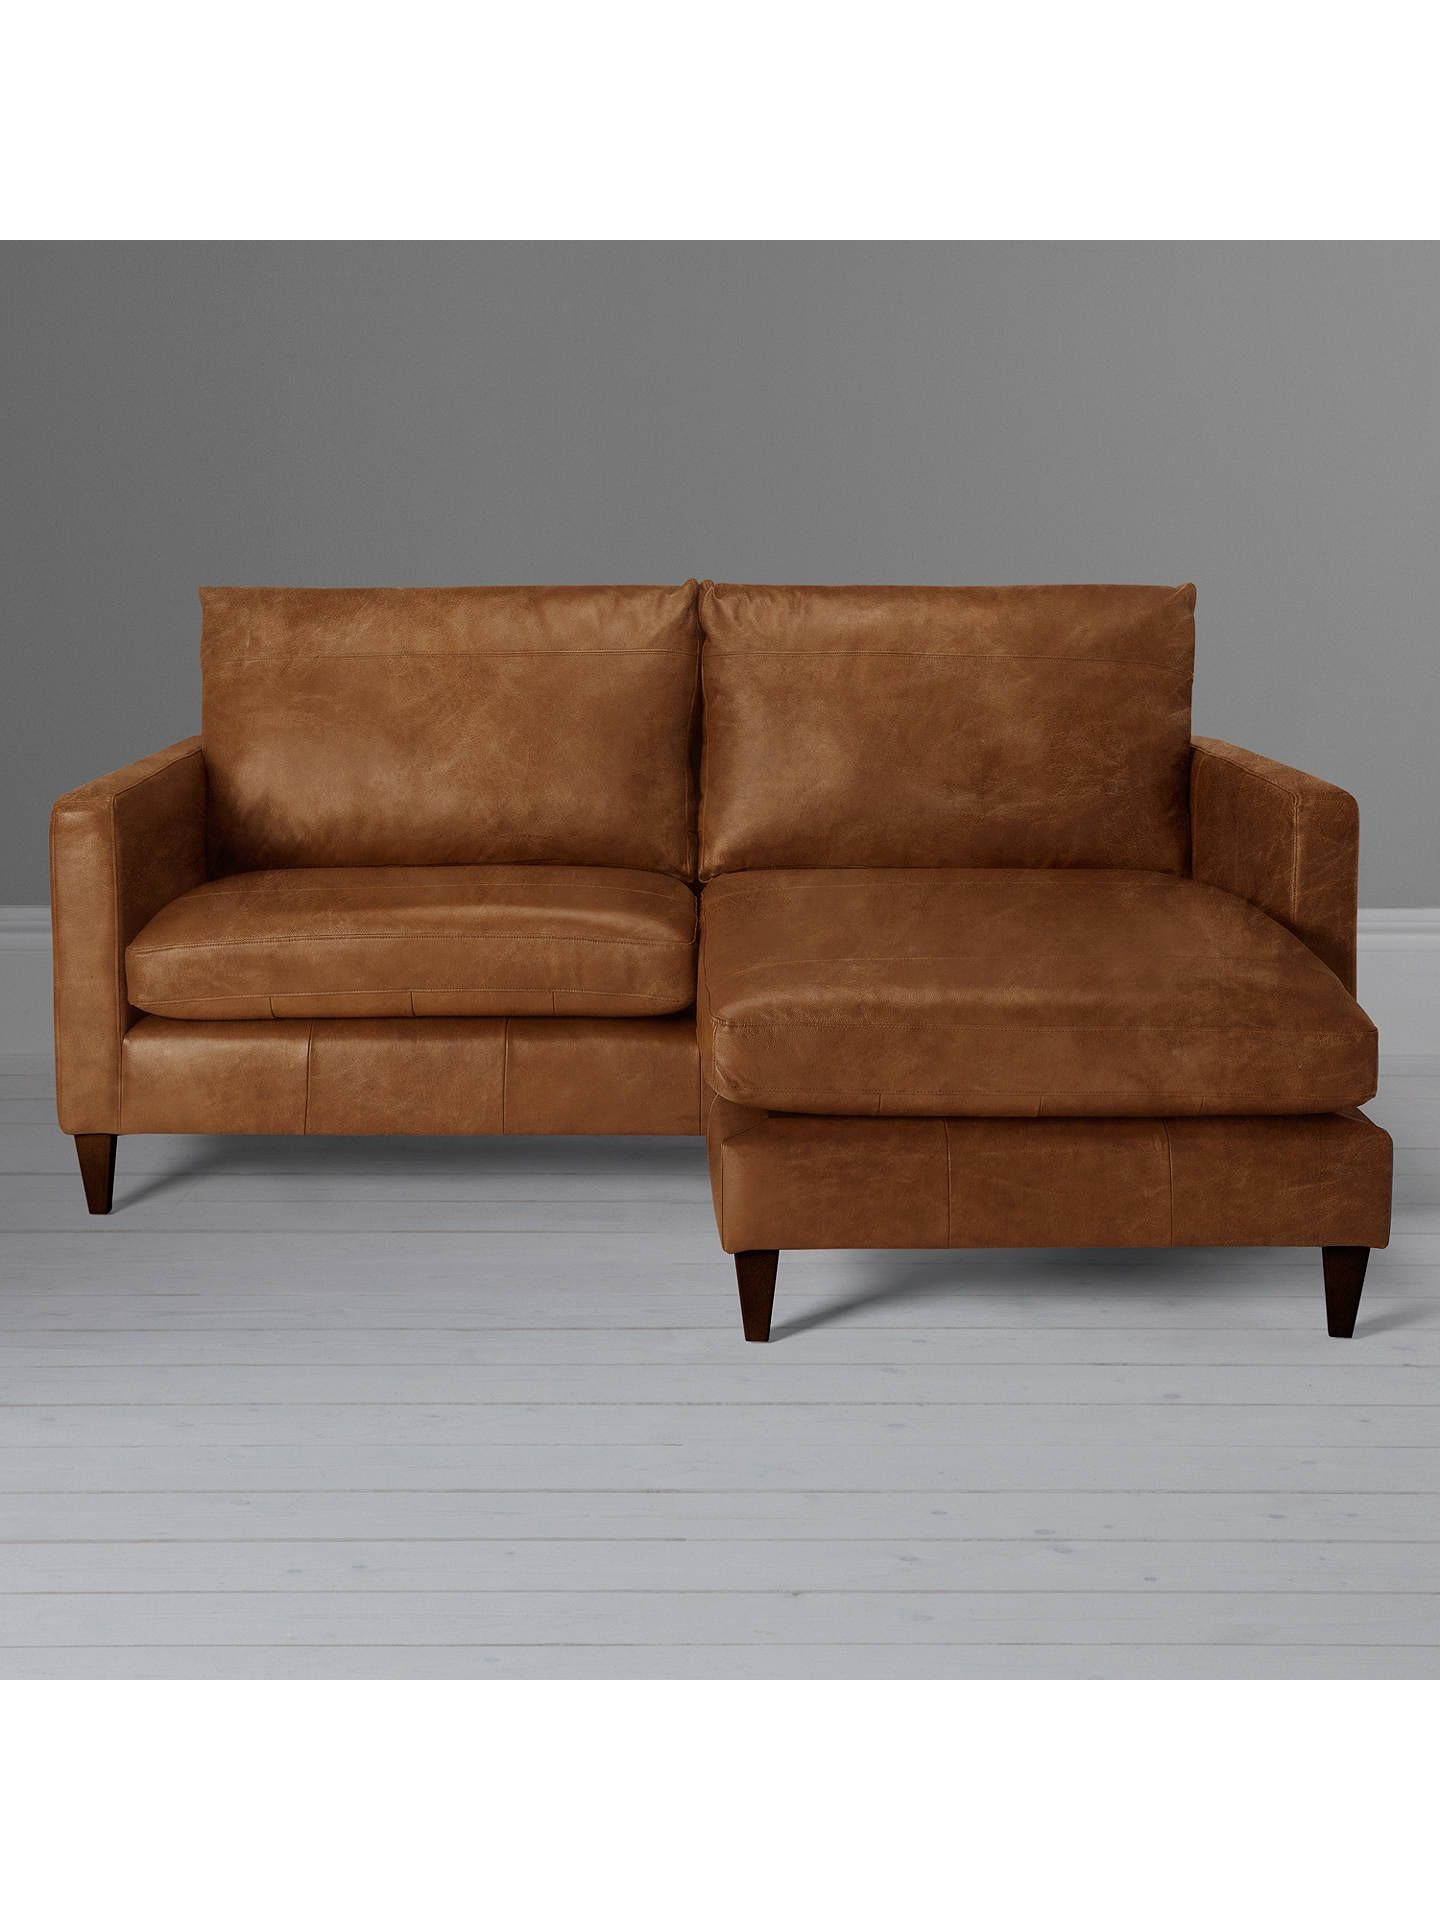 Stupendous John Lewis Partners Bailey Leather Rhf Chaise End Sofa Alphanode Cool Chair Designs And Ideas Alphanodeonline